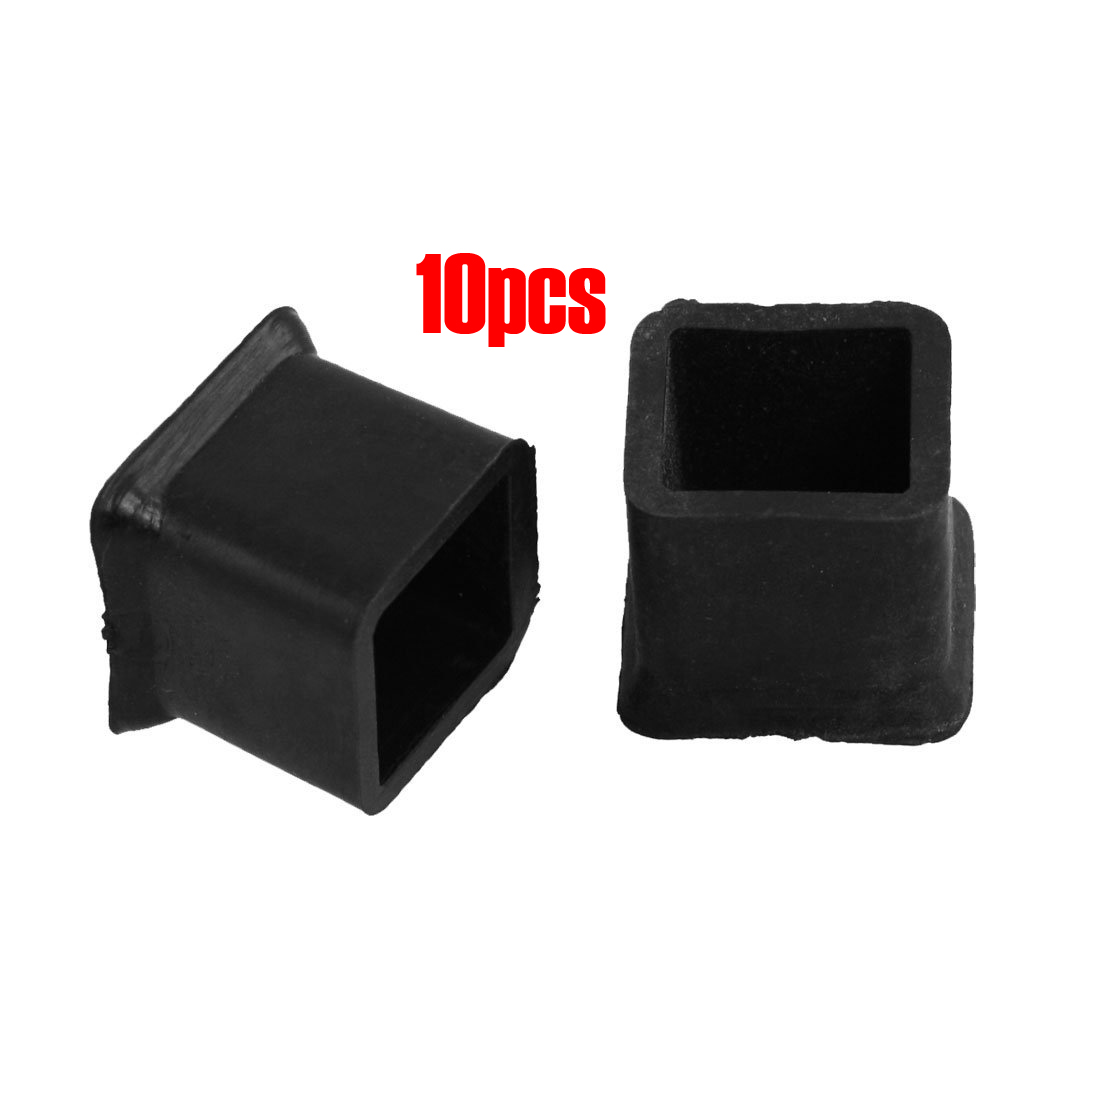 SZS Hot New 10Pcs Furniture Chair Table Leg Rubber Foot Covers Protectors 20mm x 20mm Free Shipping free shipping 10pcs smd foot hcpl3101 a3101